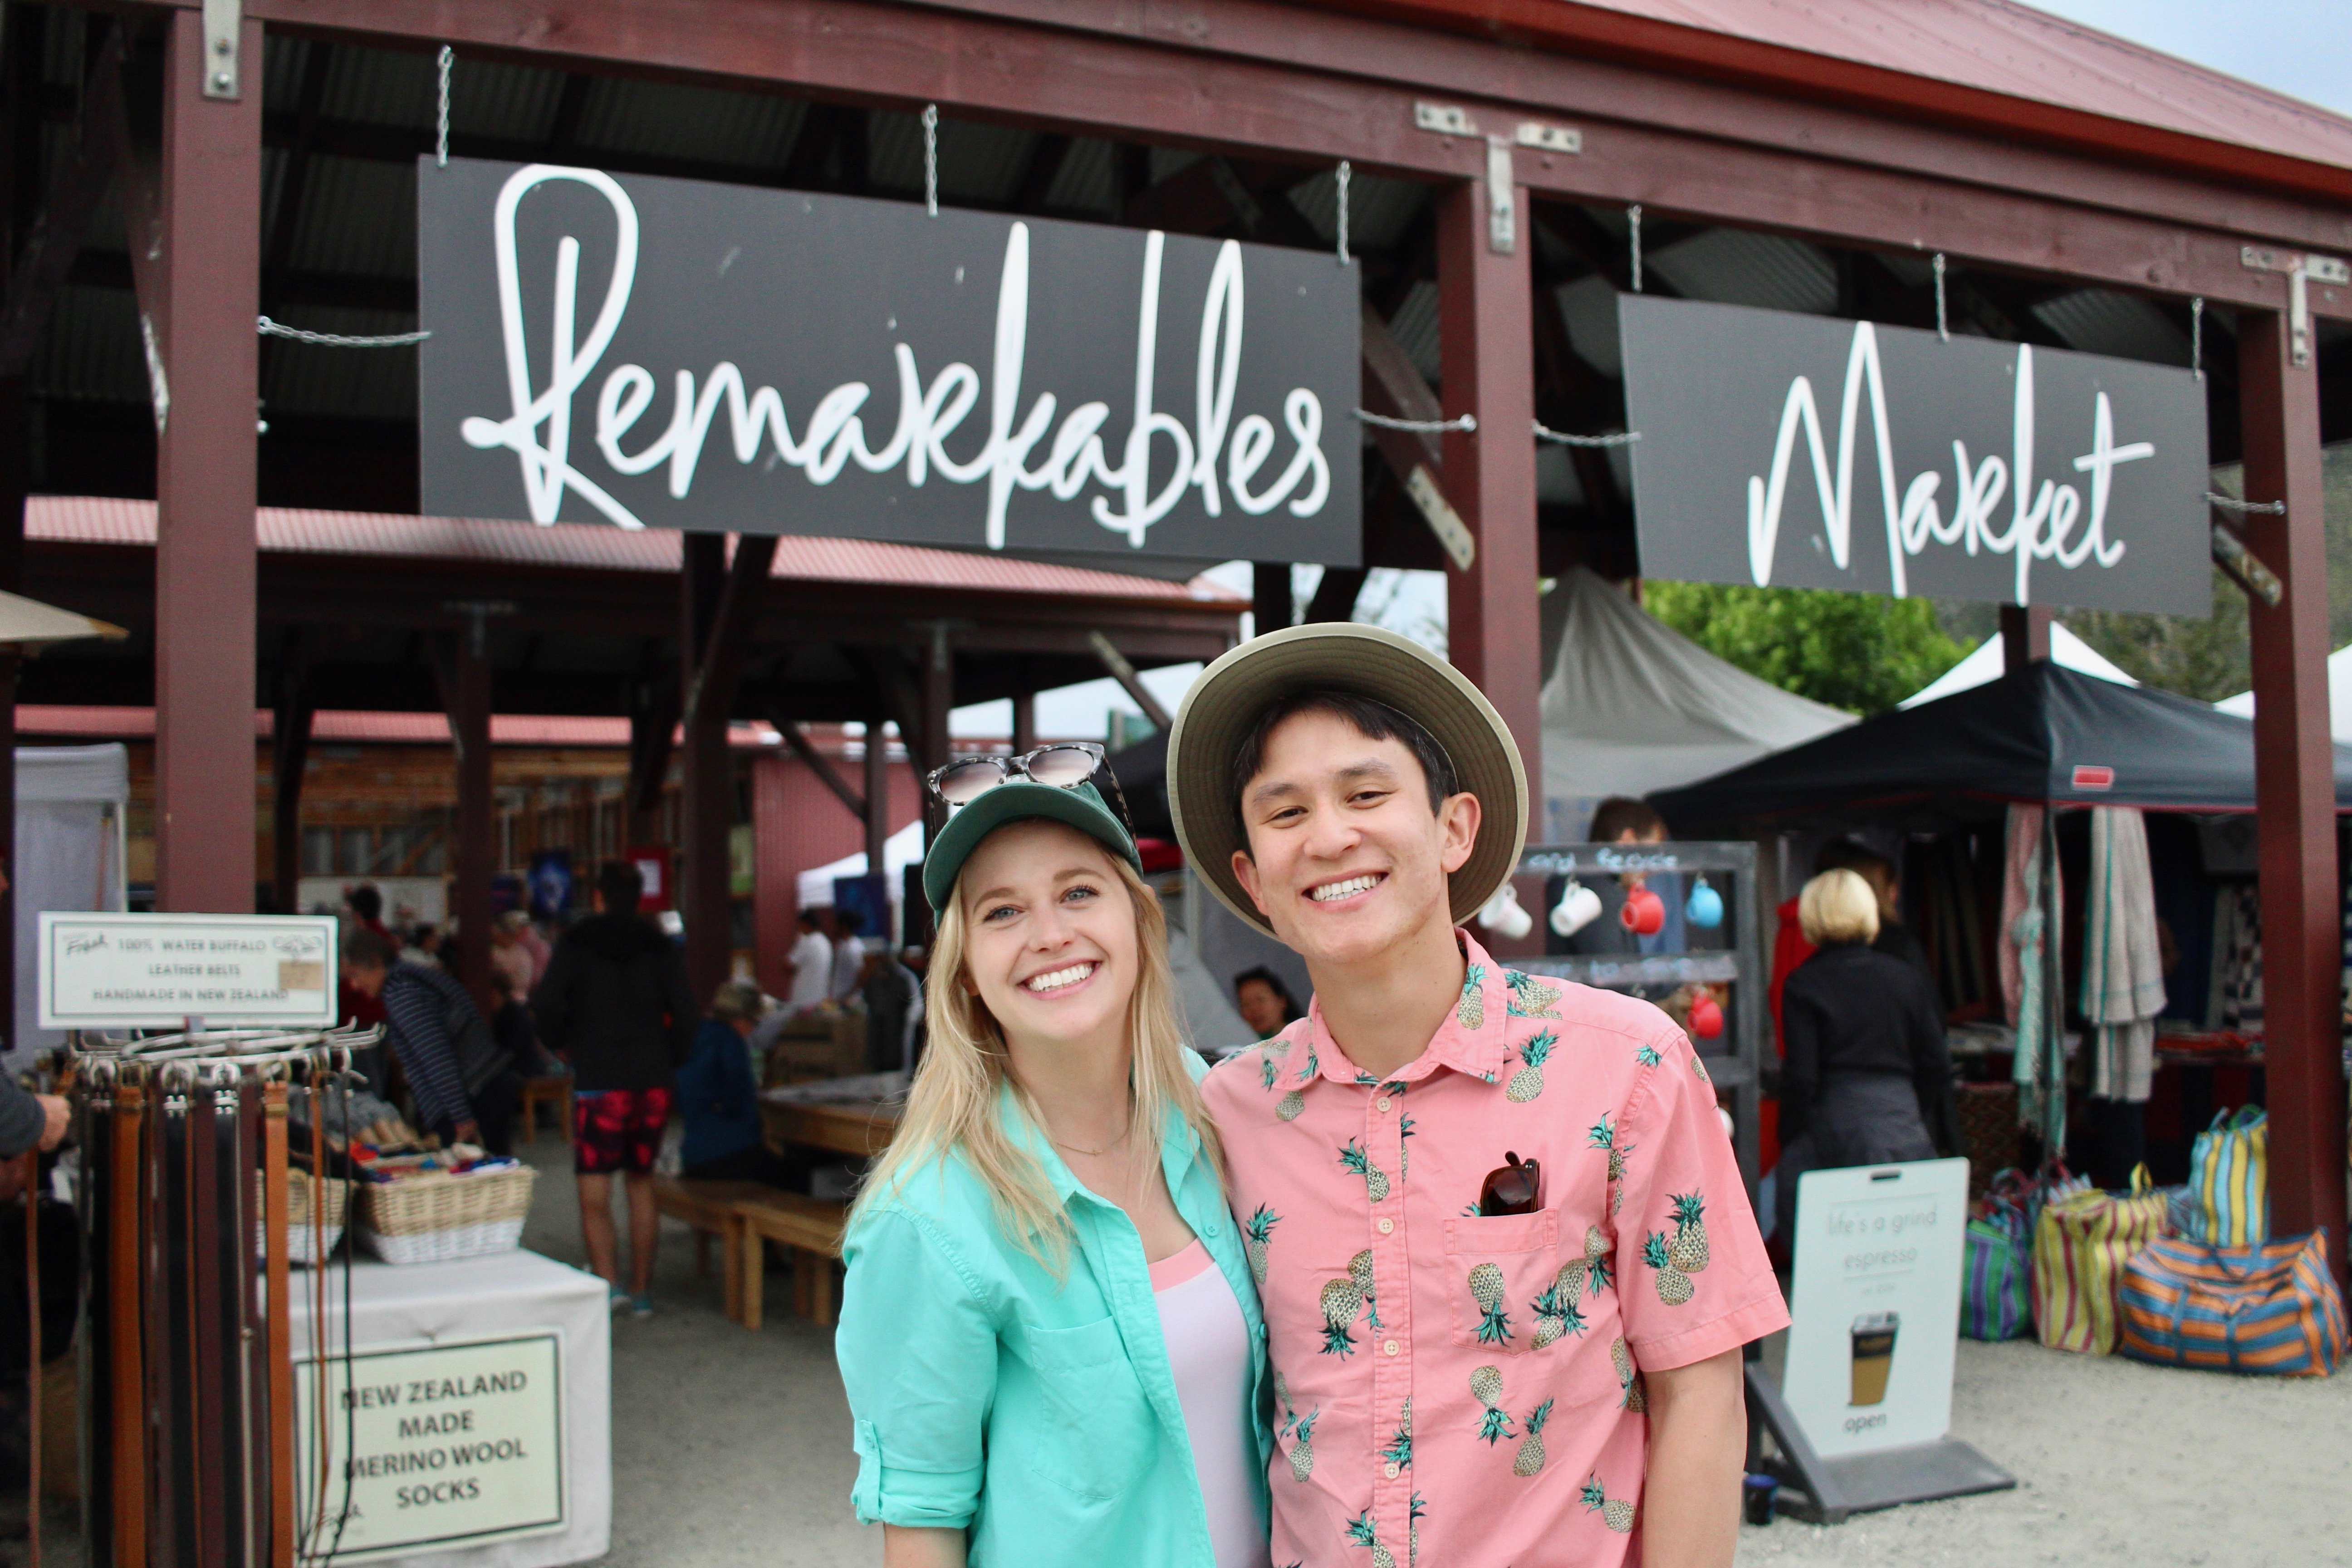 Chelsea and Chris at Remarkables Market